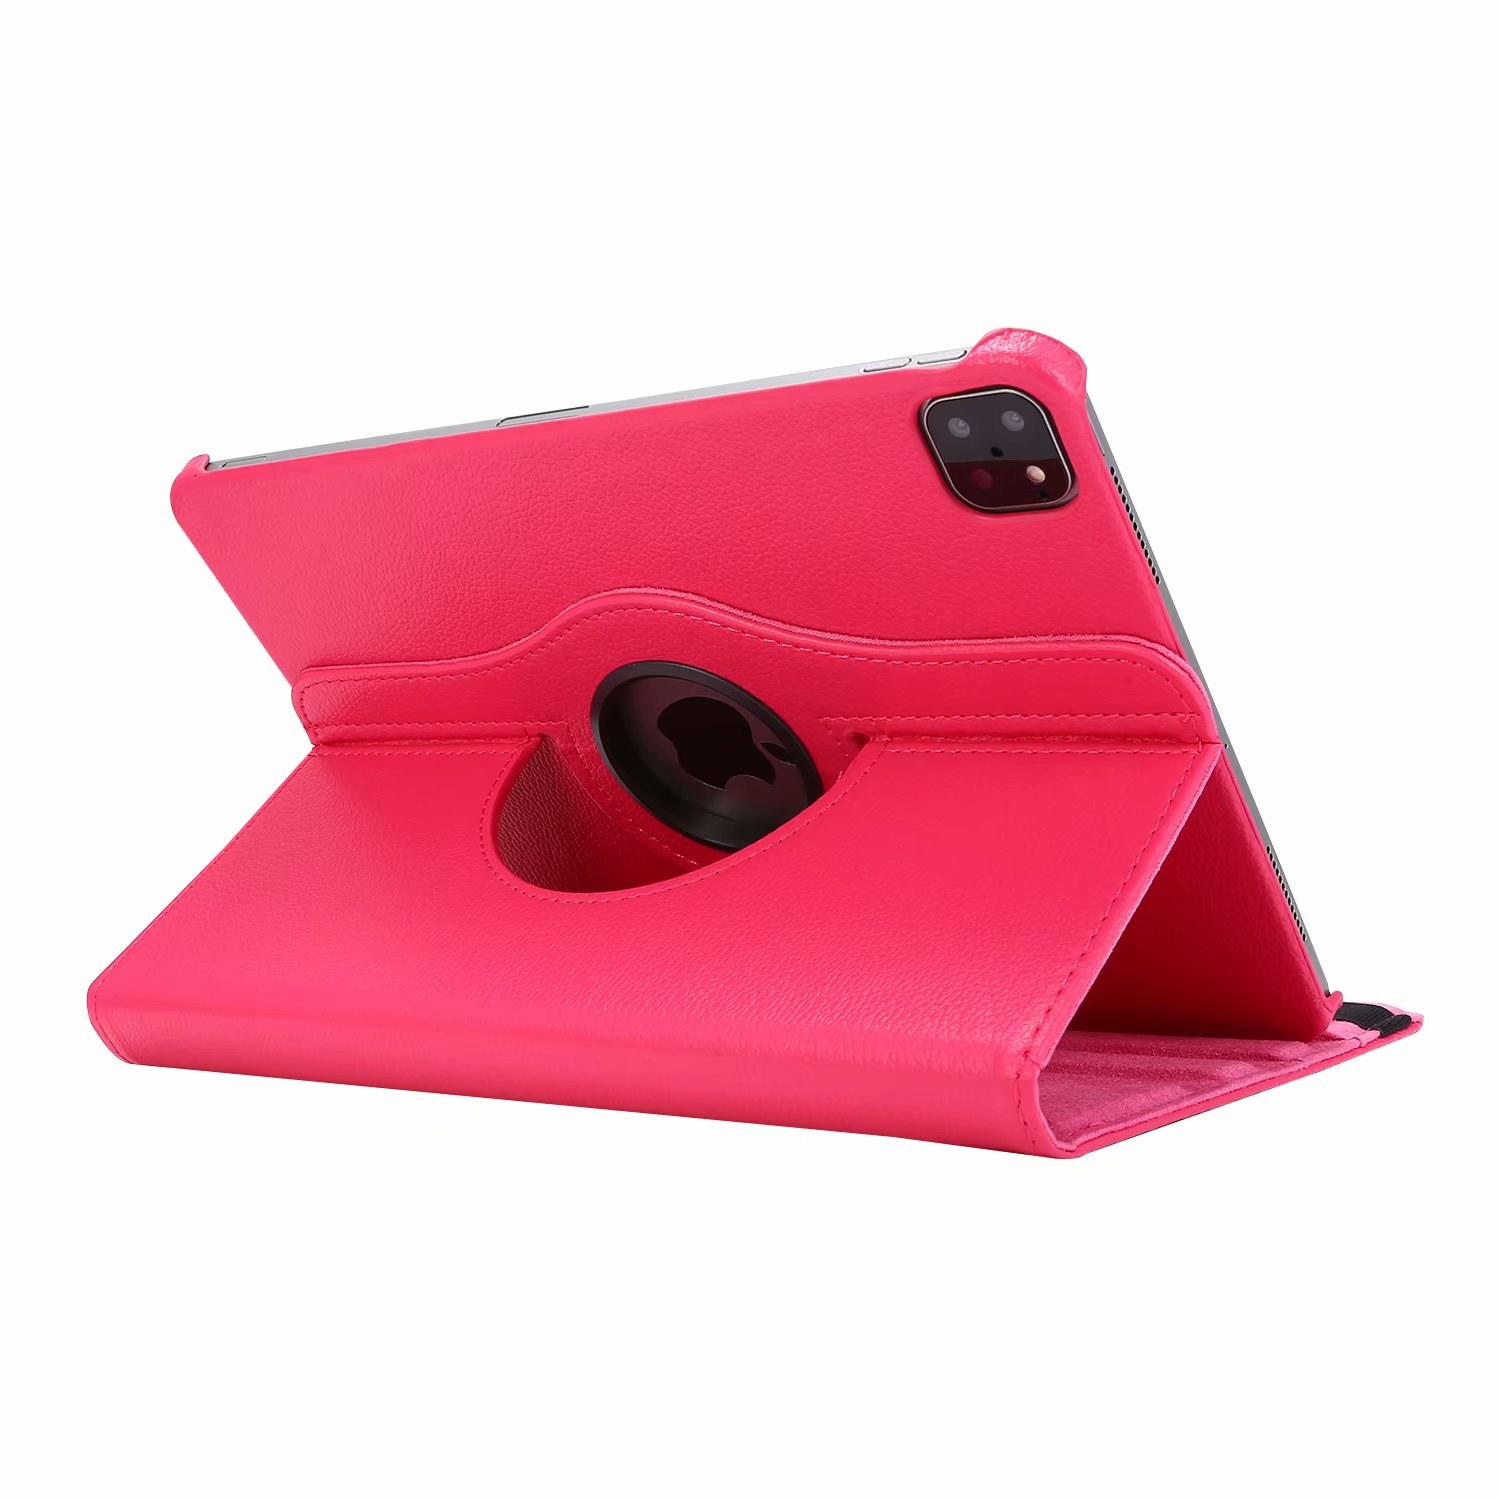 A2228 2021/2020/2018 11 iPad A2230 A1934 Degree Pro 360 A1980 Cover A2013 for A2068 Case